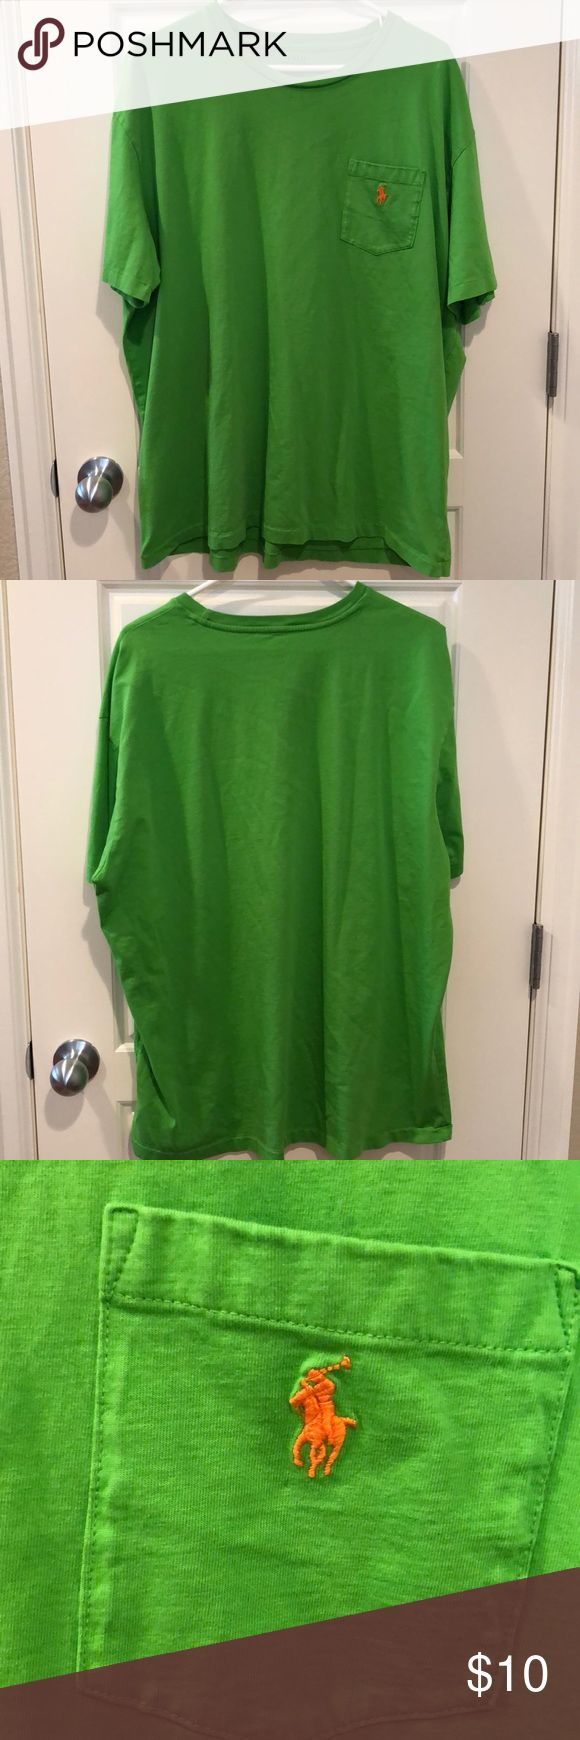 Men's Polo T-Shirt Like new. Neon green in color. Left chest pocket with orange embroidered Polo logo. Size XL Polo by Ralph Lauren Shirts Tees - Short Sleeve